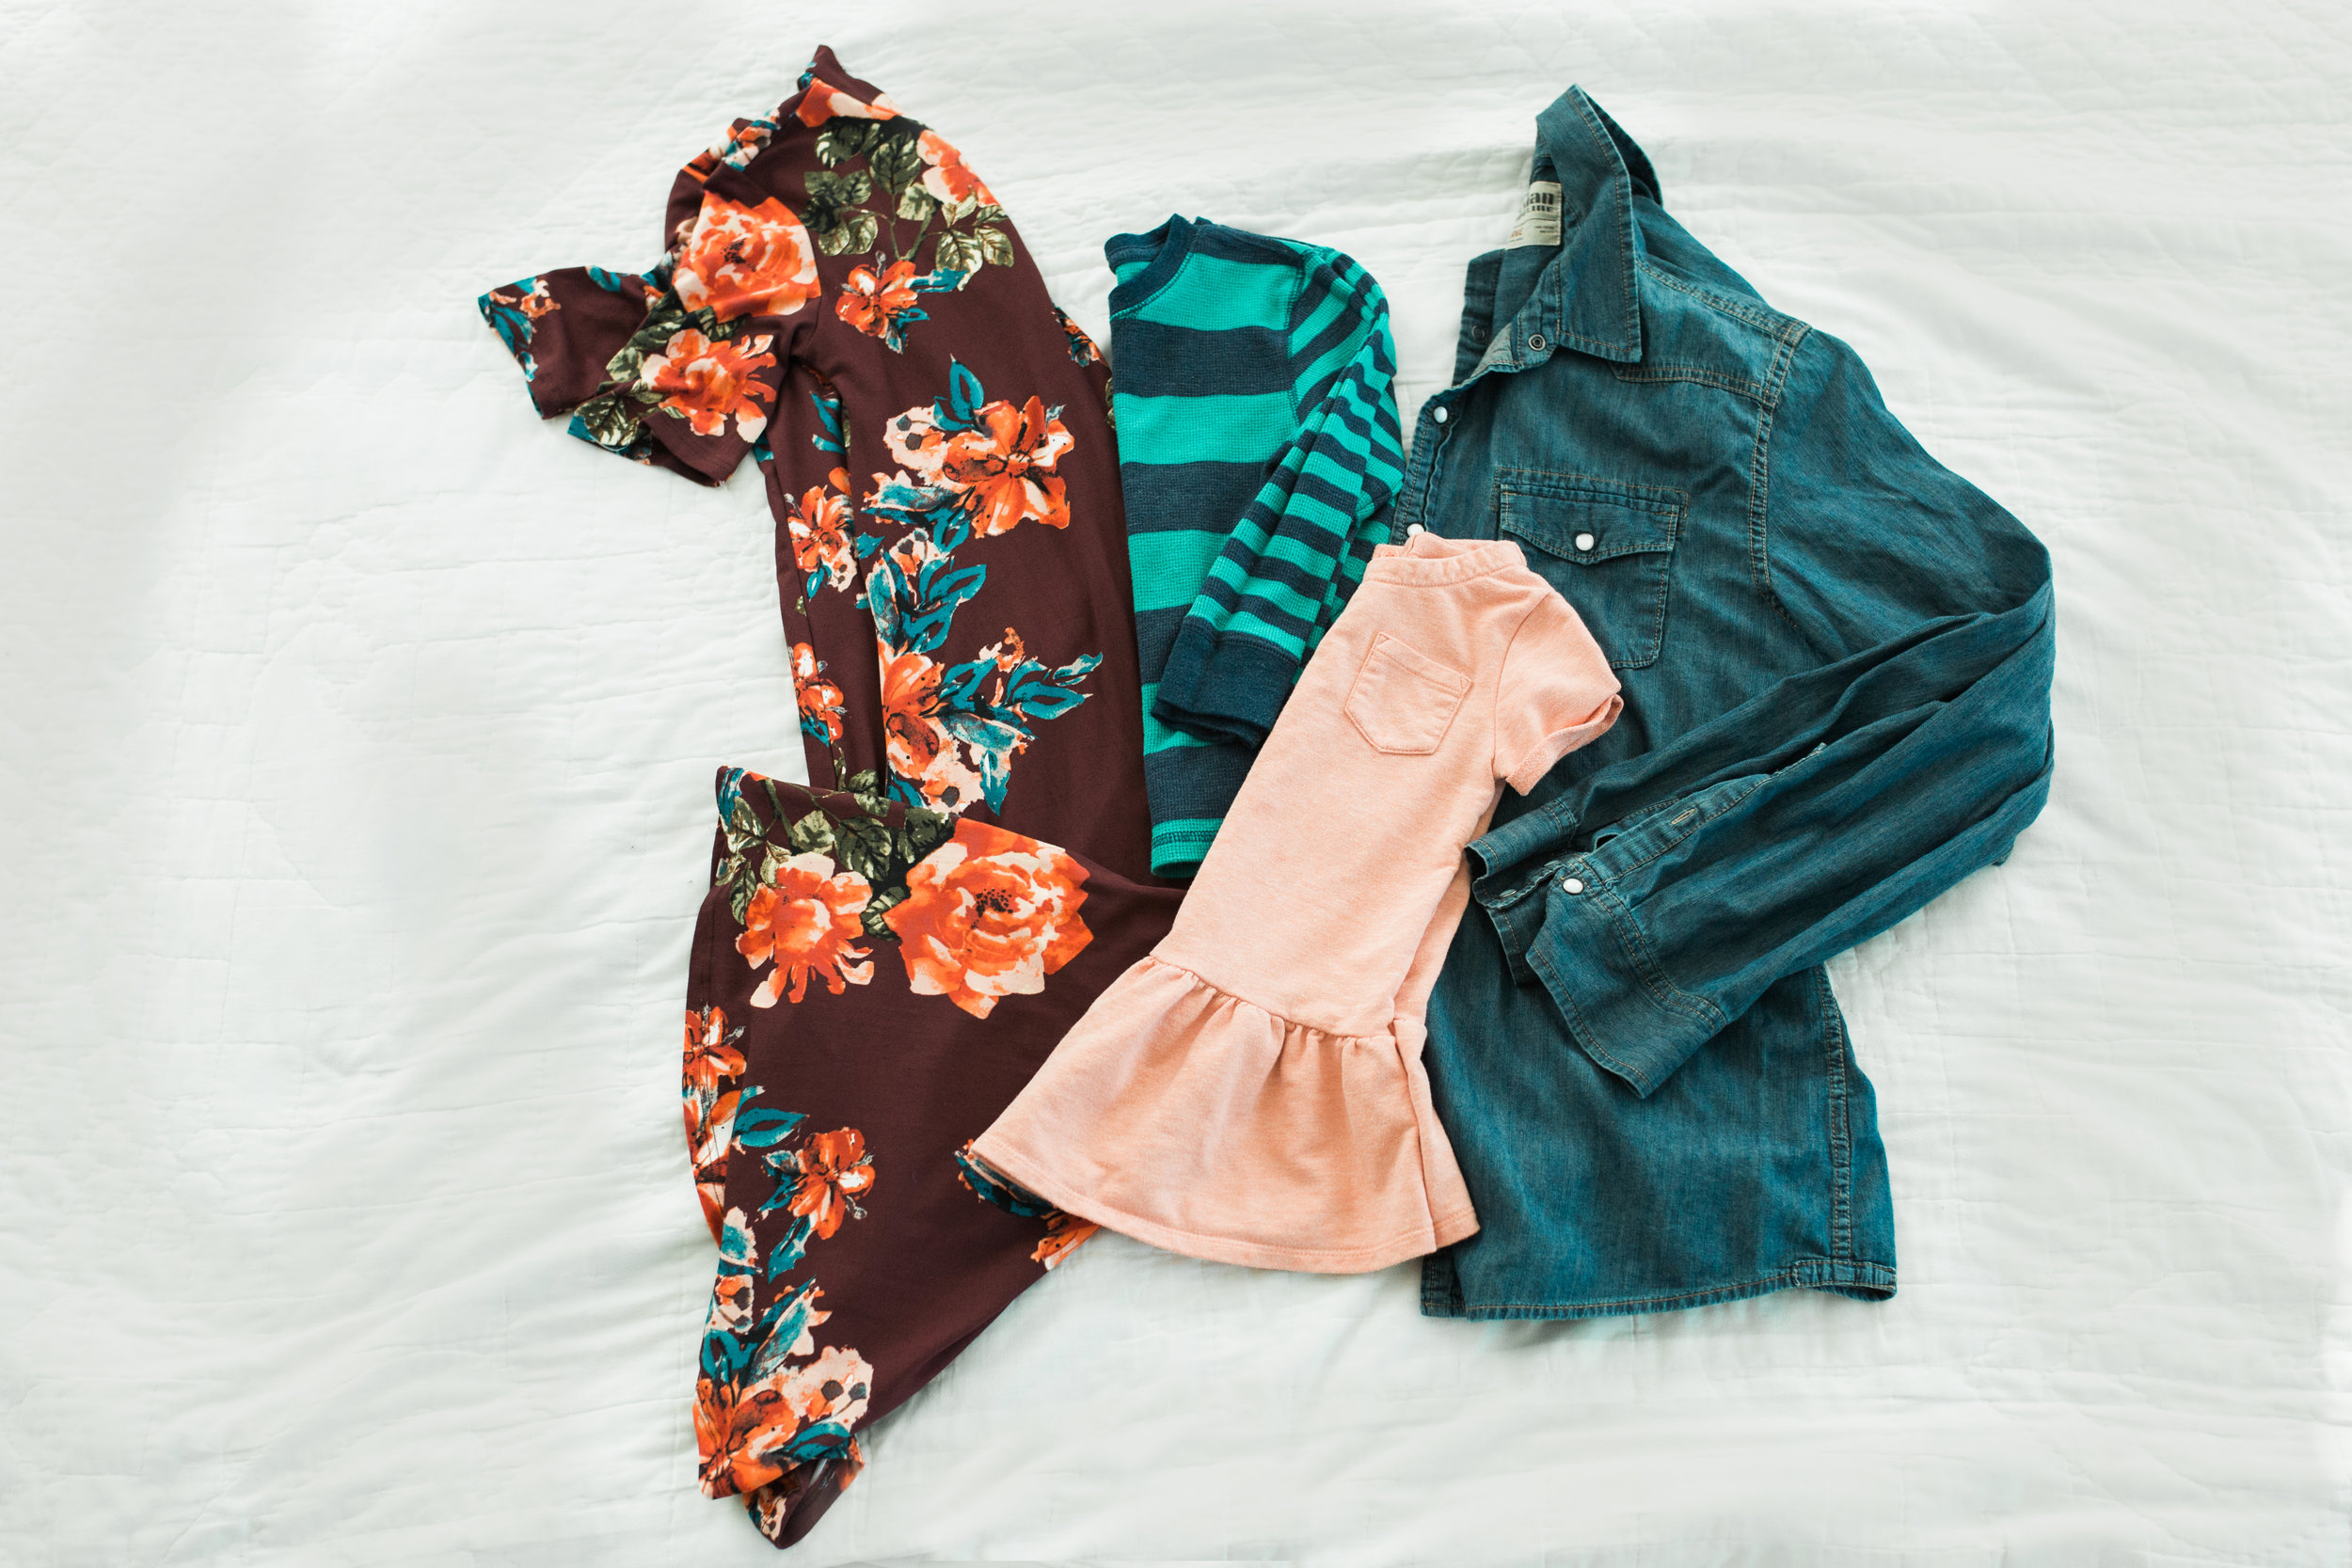 This is a very colorful arrangement. My only one this bright. Fun floral dress for mom, with ankle boots. Girl in complimentary coral dress, maybe with matching headband. Boy in striped aqua/navy thermal (colors in moms dress). Dad stays neutrtal in chambray shirt and khakis.